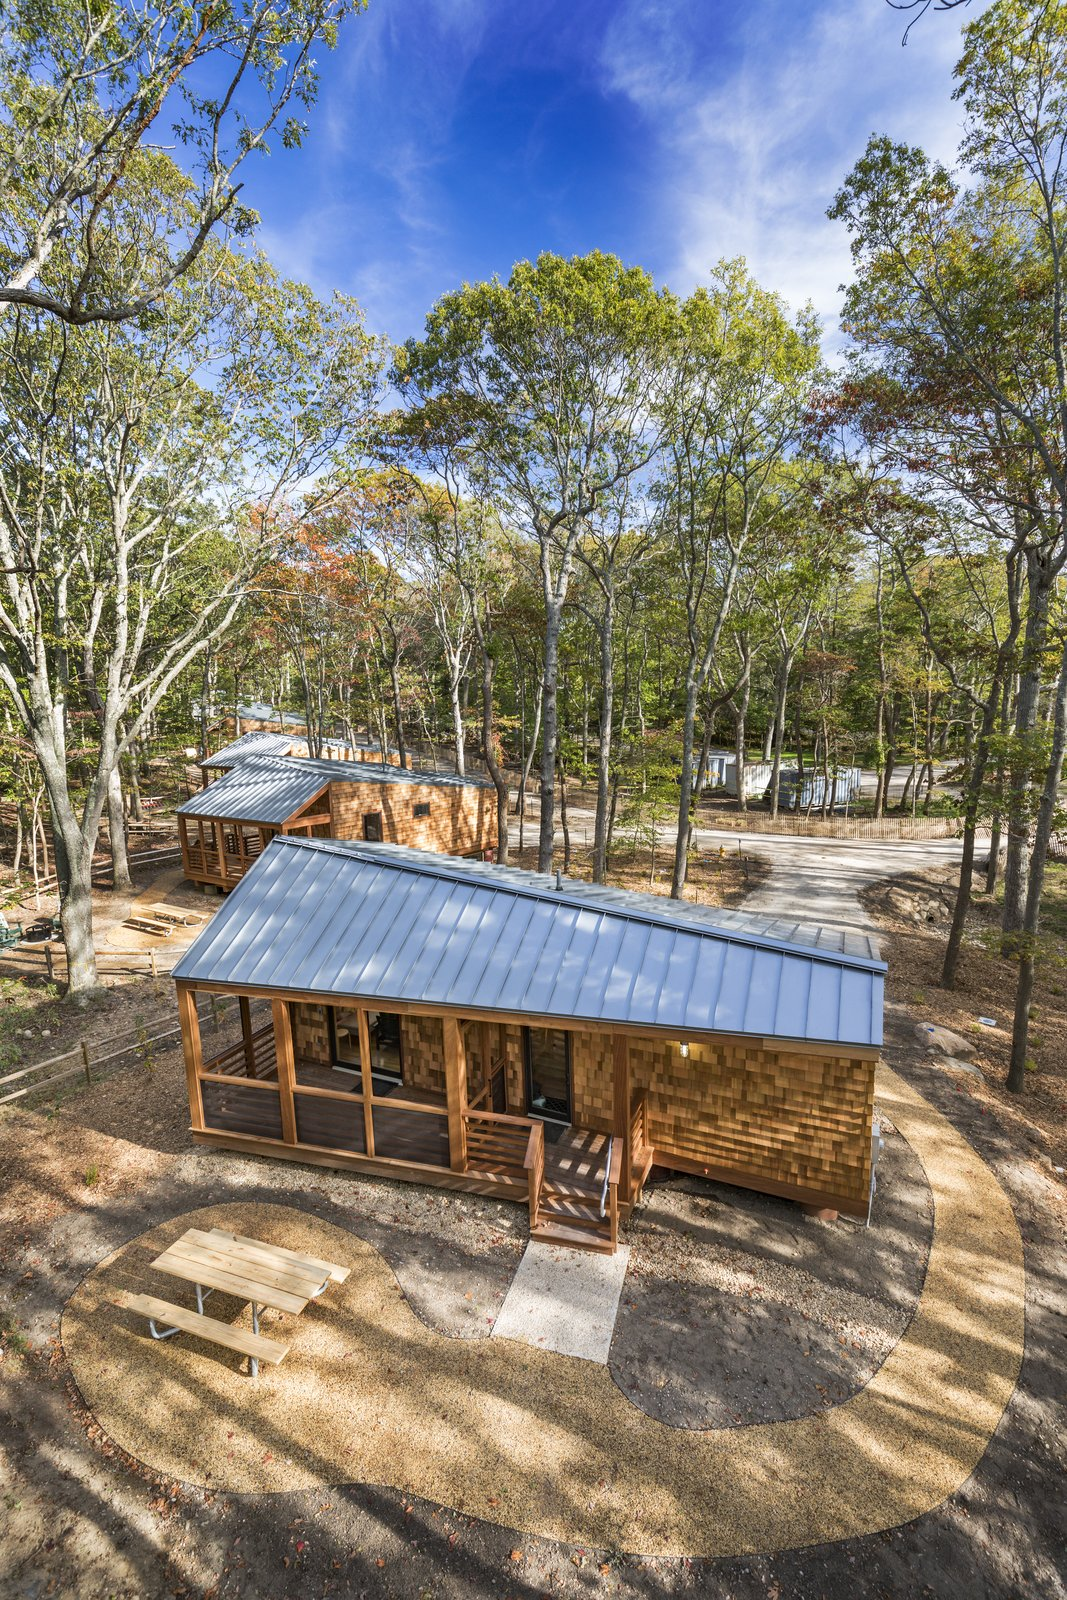 Charmant A Long Island Campground Gets A Bunch Of New Modern Cabins   Photo 1 Of 6